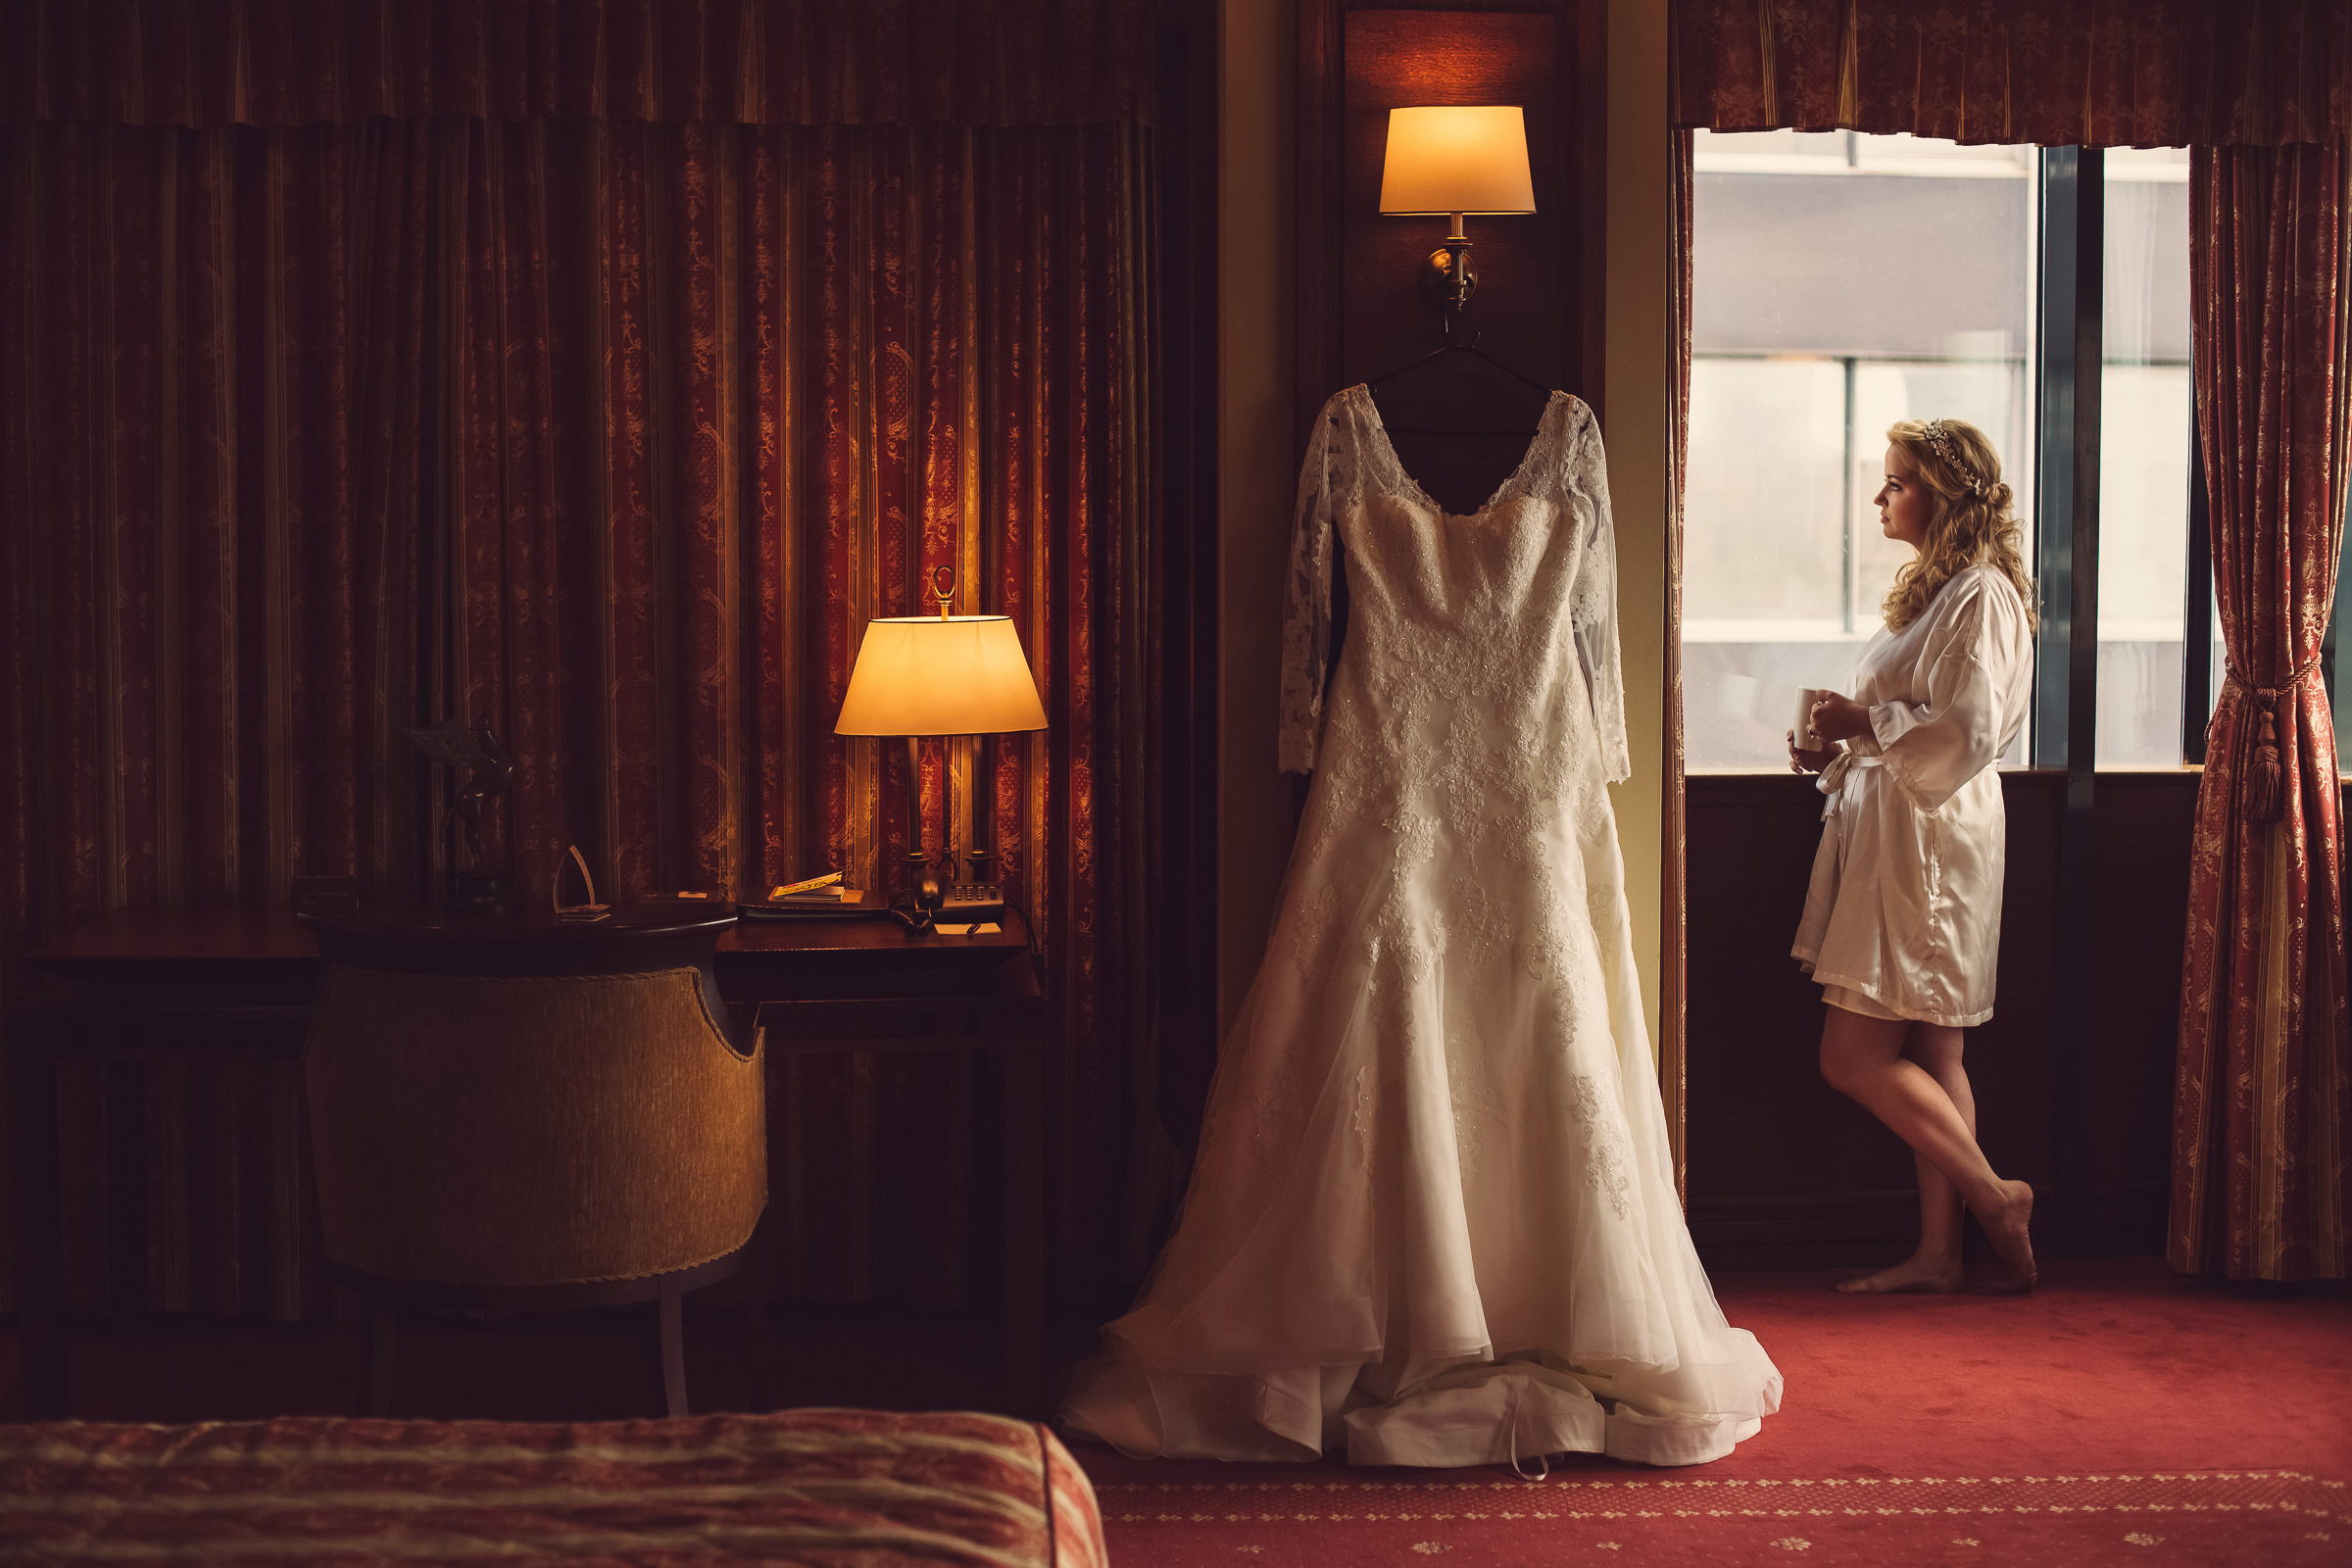 Robed bride with hanging gown - photo by Deliysky Studio